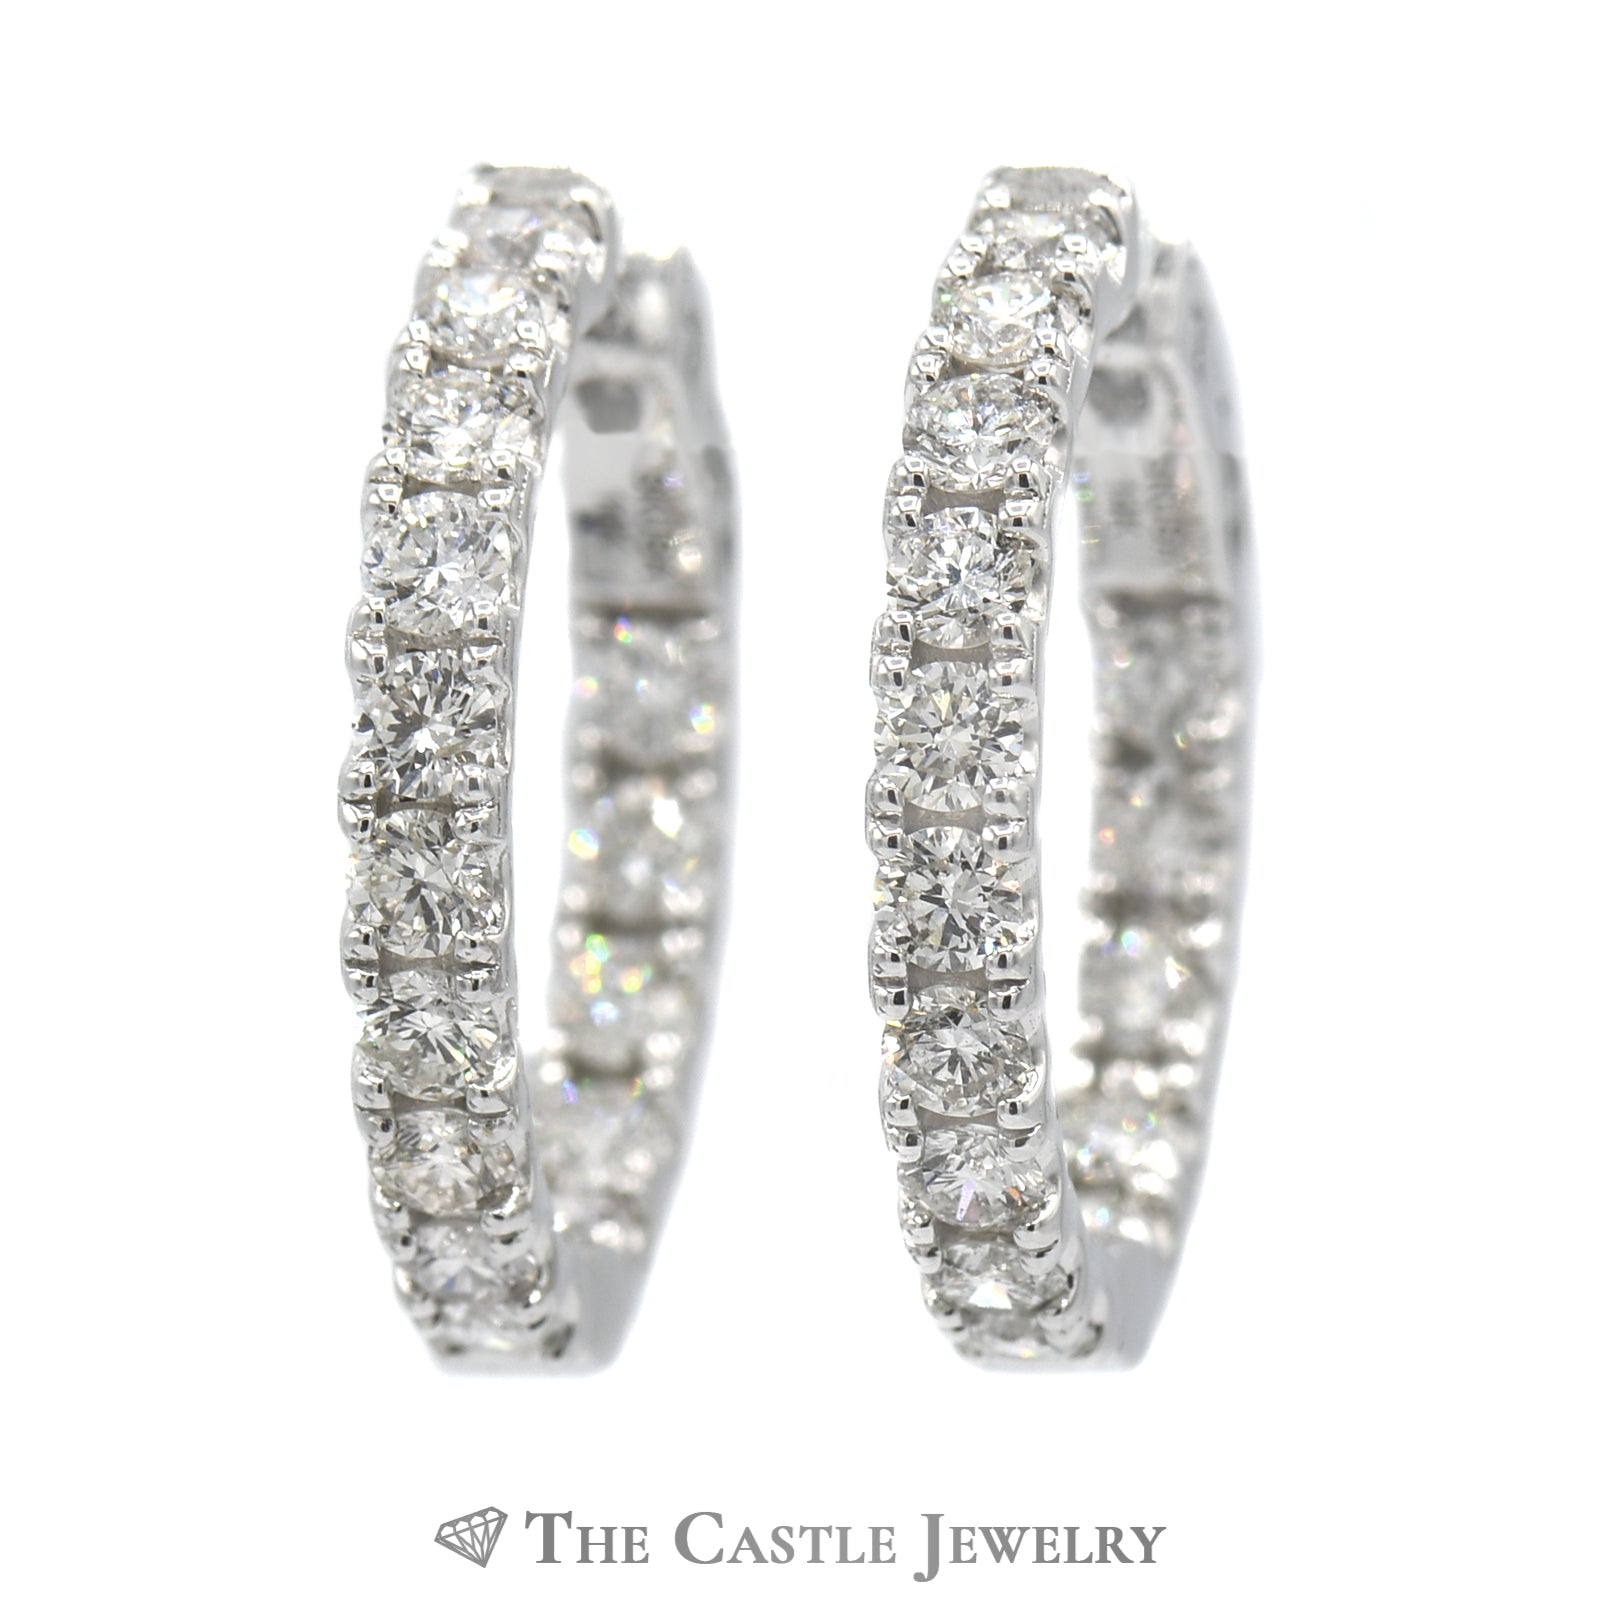 3cttw Hollywood Hoop Earrings in 14K White Gold